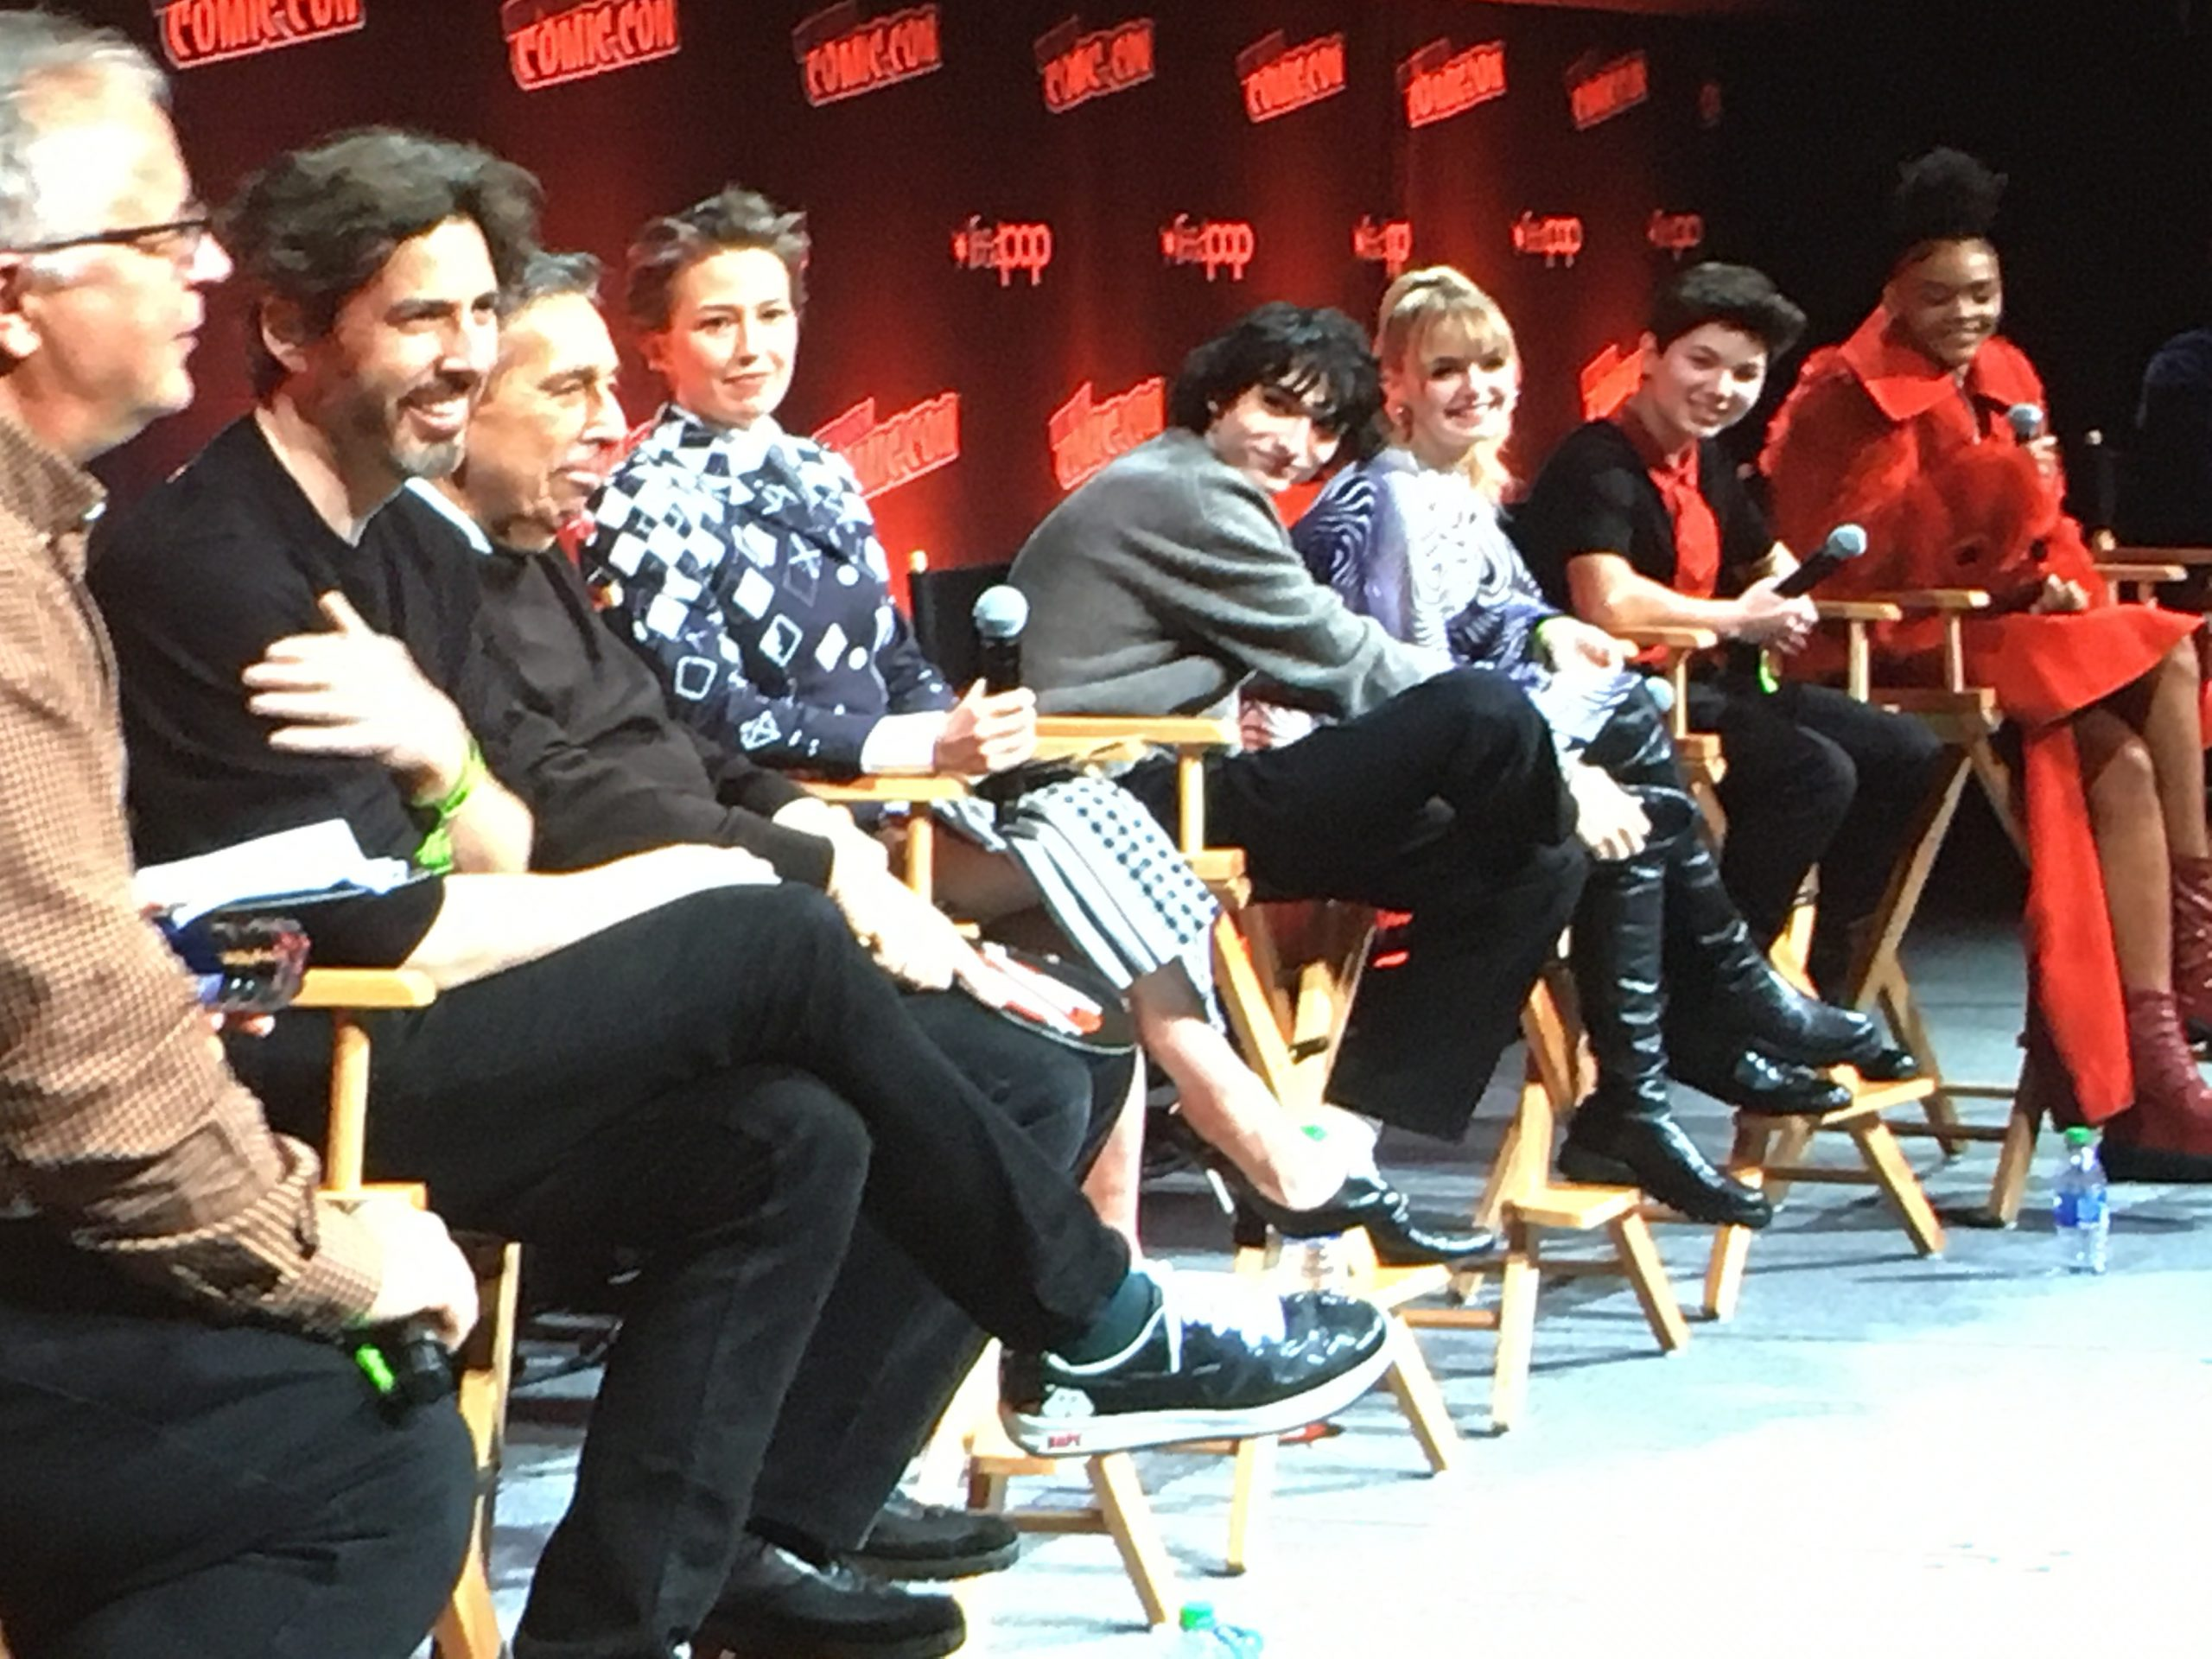 Surprise full screening of 'Ghostbusters: Afterlife' at NYCC '21